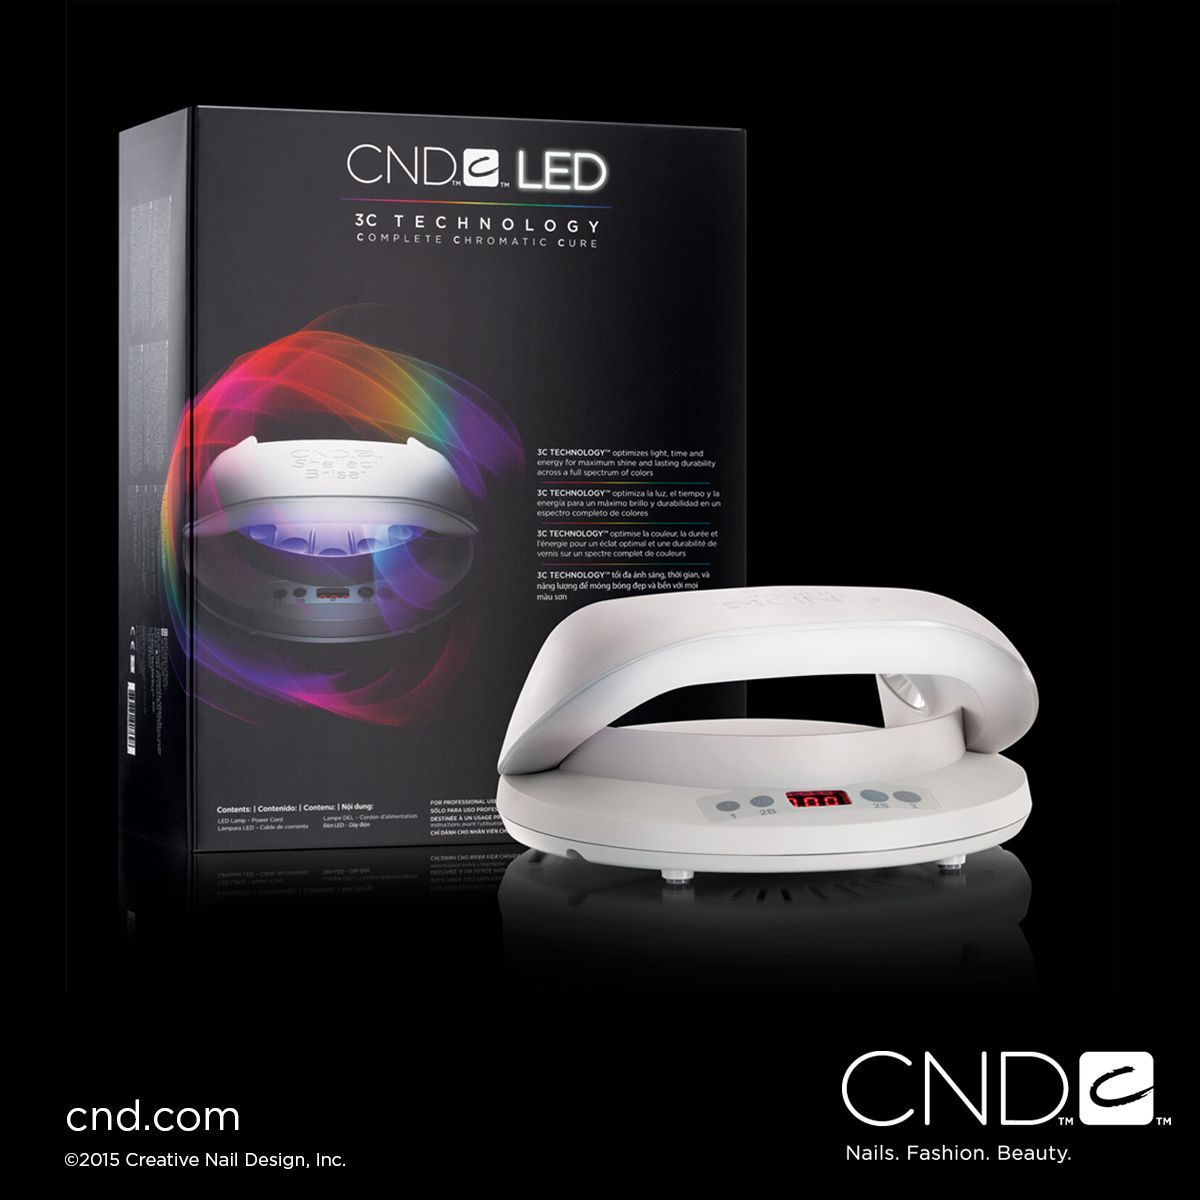 The new cnd led lamp is designed to completely and evenly cure cnd